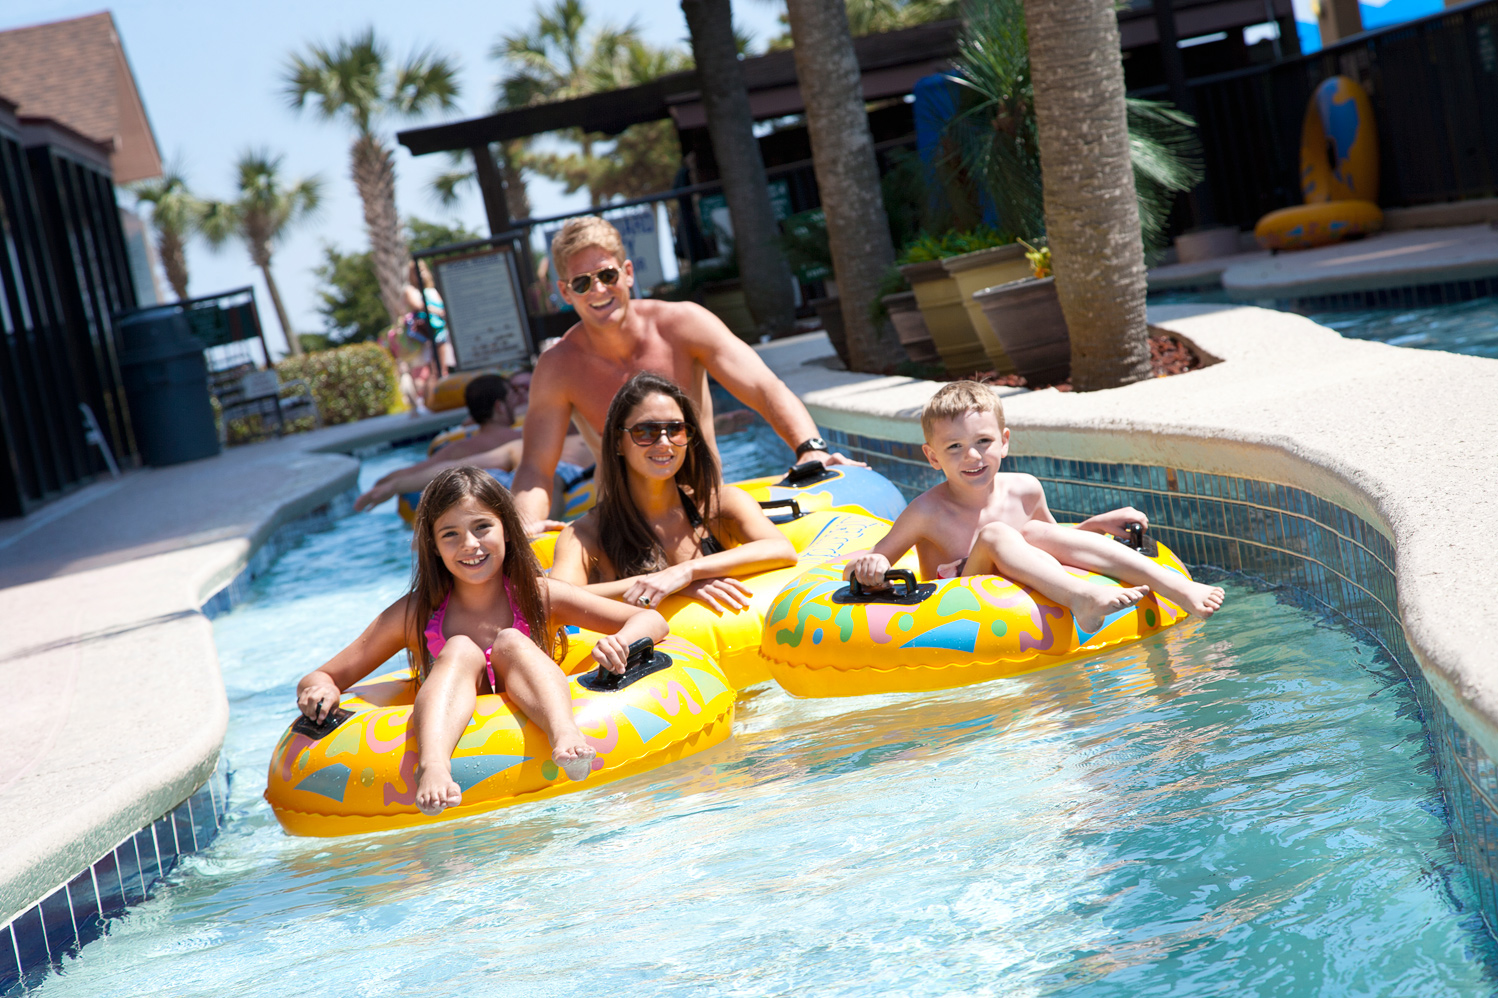 Beach Colony Resort lazy river ride in Myrtle Beach, SC.